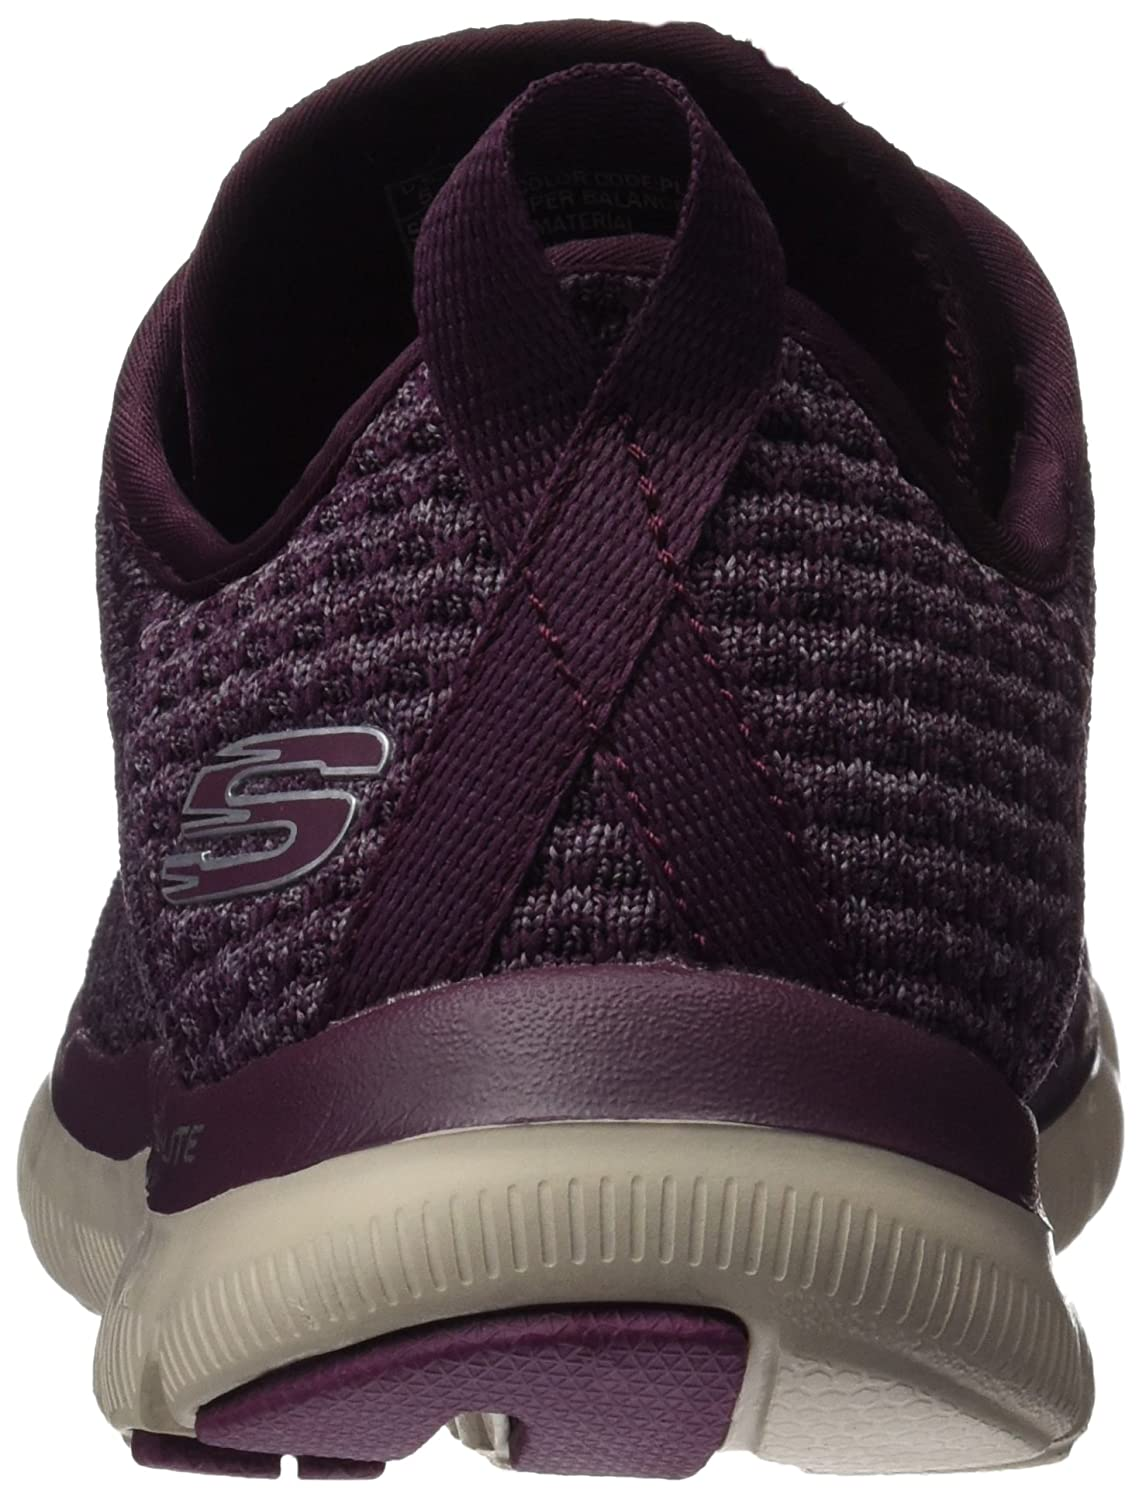 Skechers Sport Bold Women's Flex Appeal 2.0 Bold Sport Move Fashion Sneaker B01MS9R15S 5 B(M) US|Plum b418ff